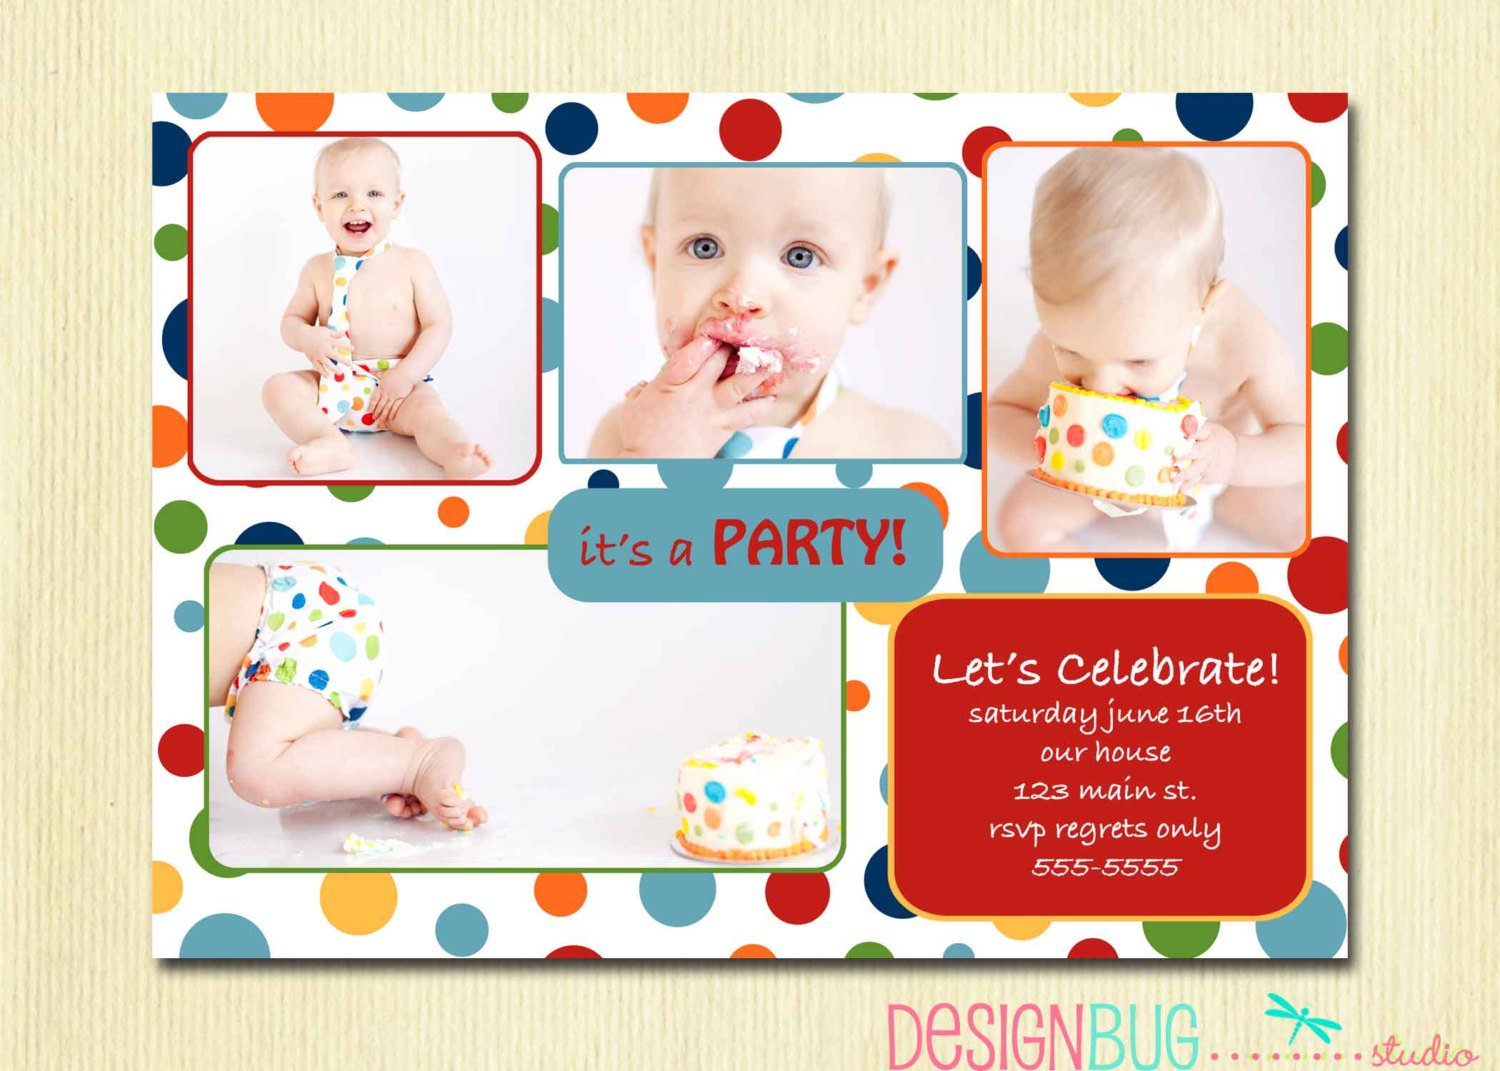 Cake First Birthday Party Invitation